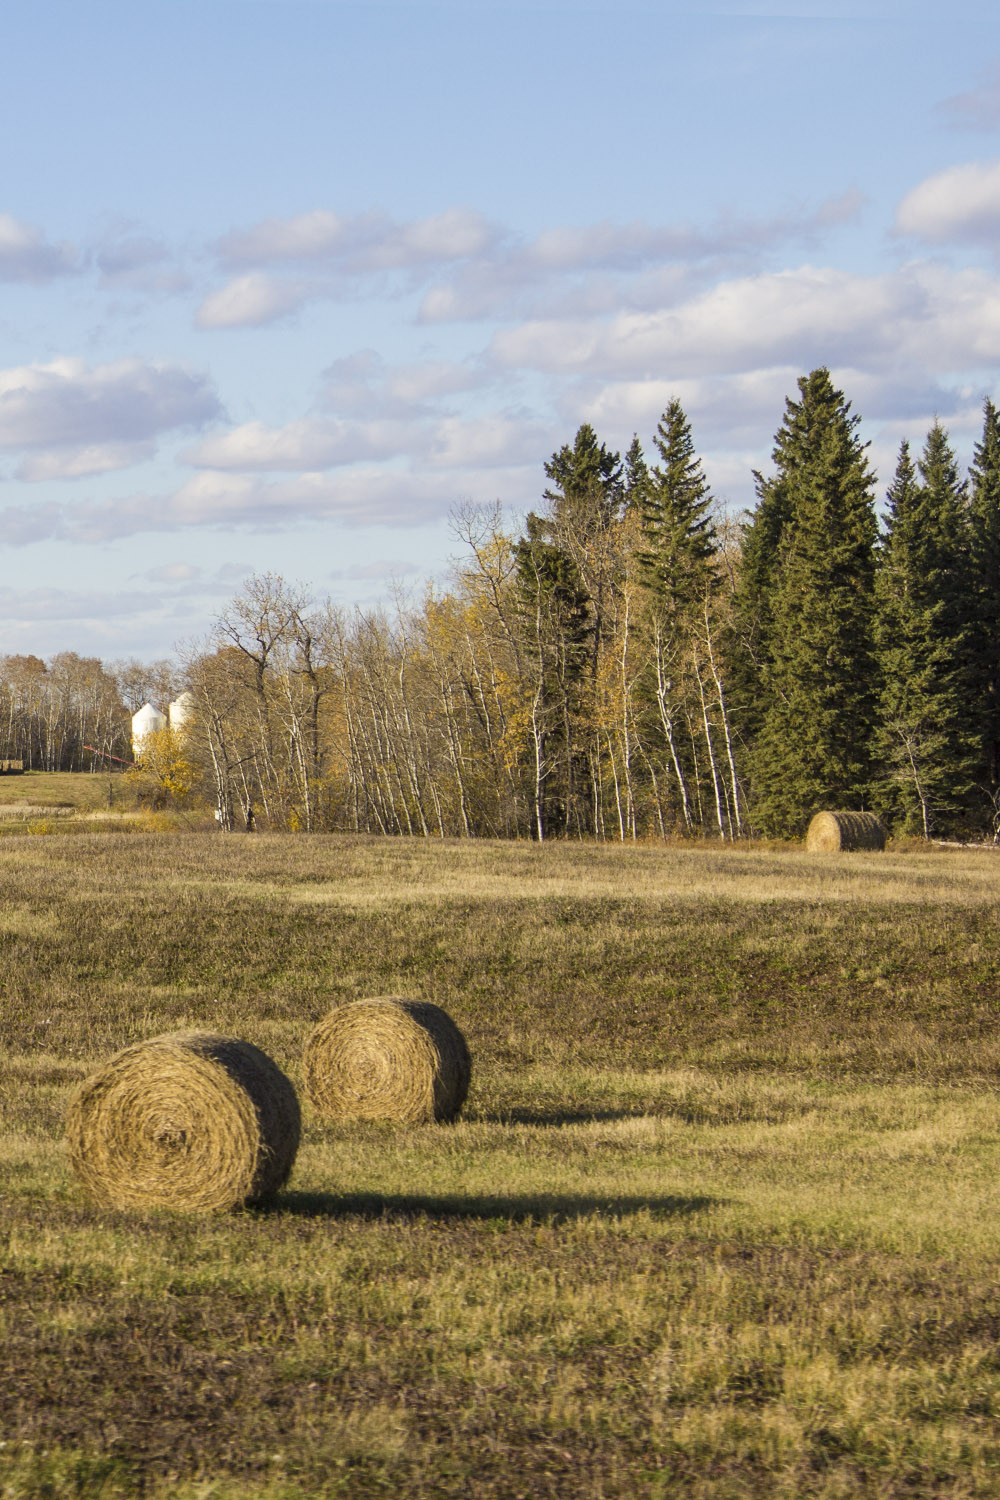 Hay Bales in Field - 20+ Photos Guaranteed to Inspire a Manitoba Road Trip :: I've Been Bit! A Travel Blog